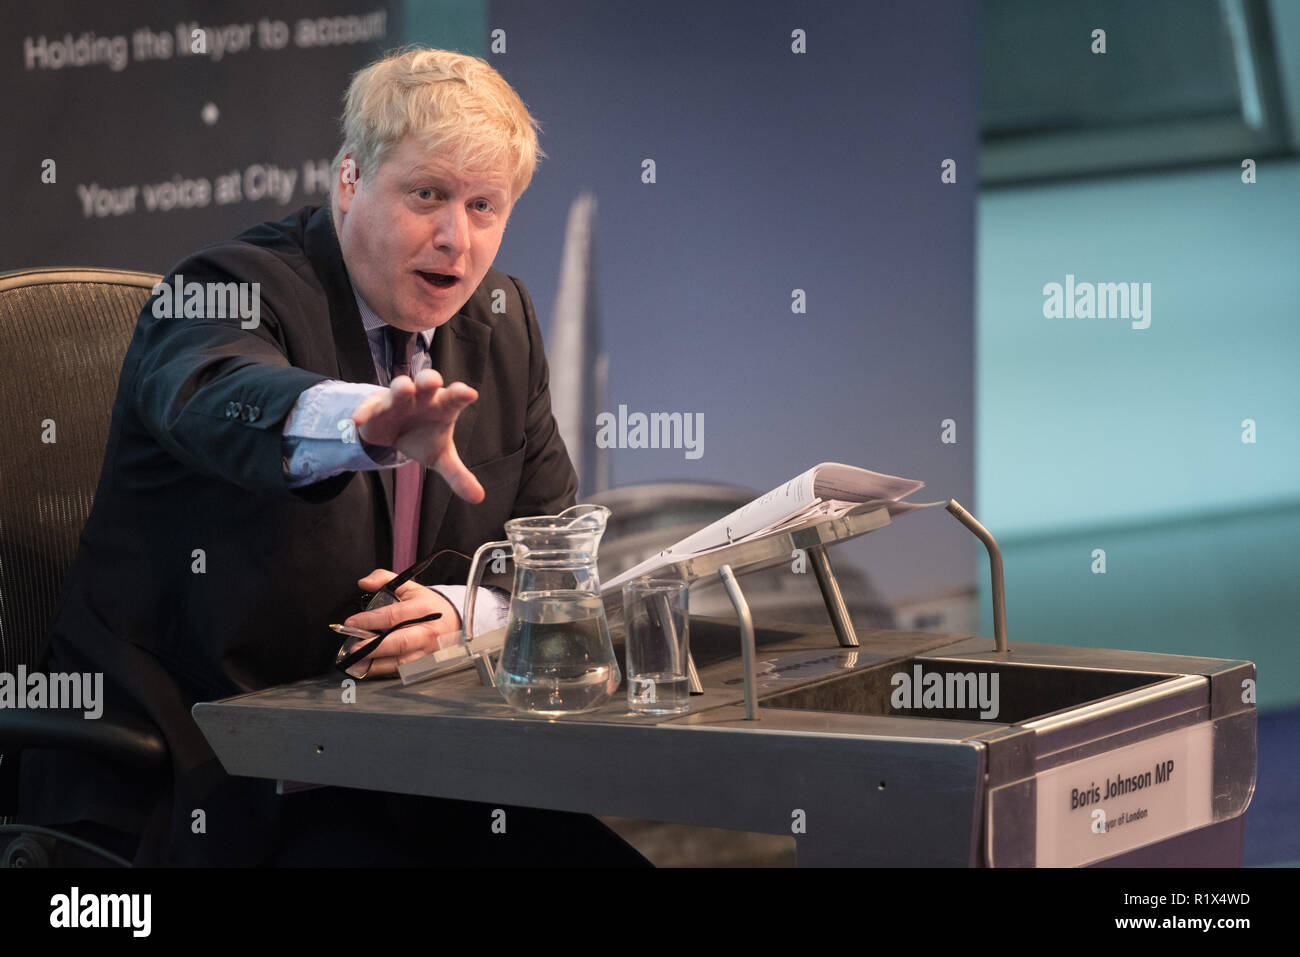 The Chamber at City Hall, The Queen's Walk, London, UK. 22nd February, 2016. The current Mayor of London, Boris Johnson, presents his last £16 billion - Stock Image